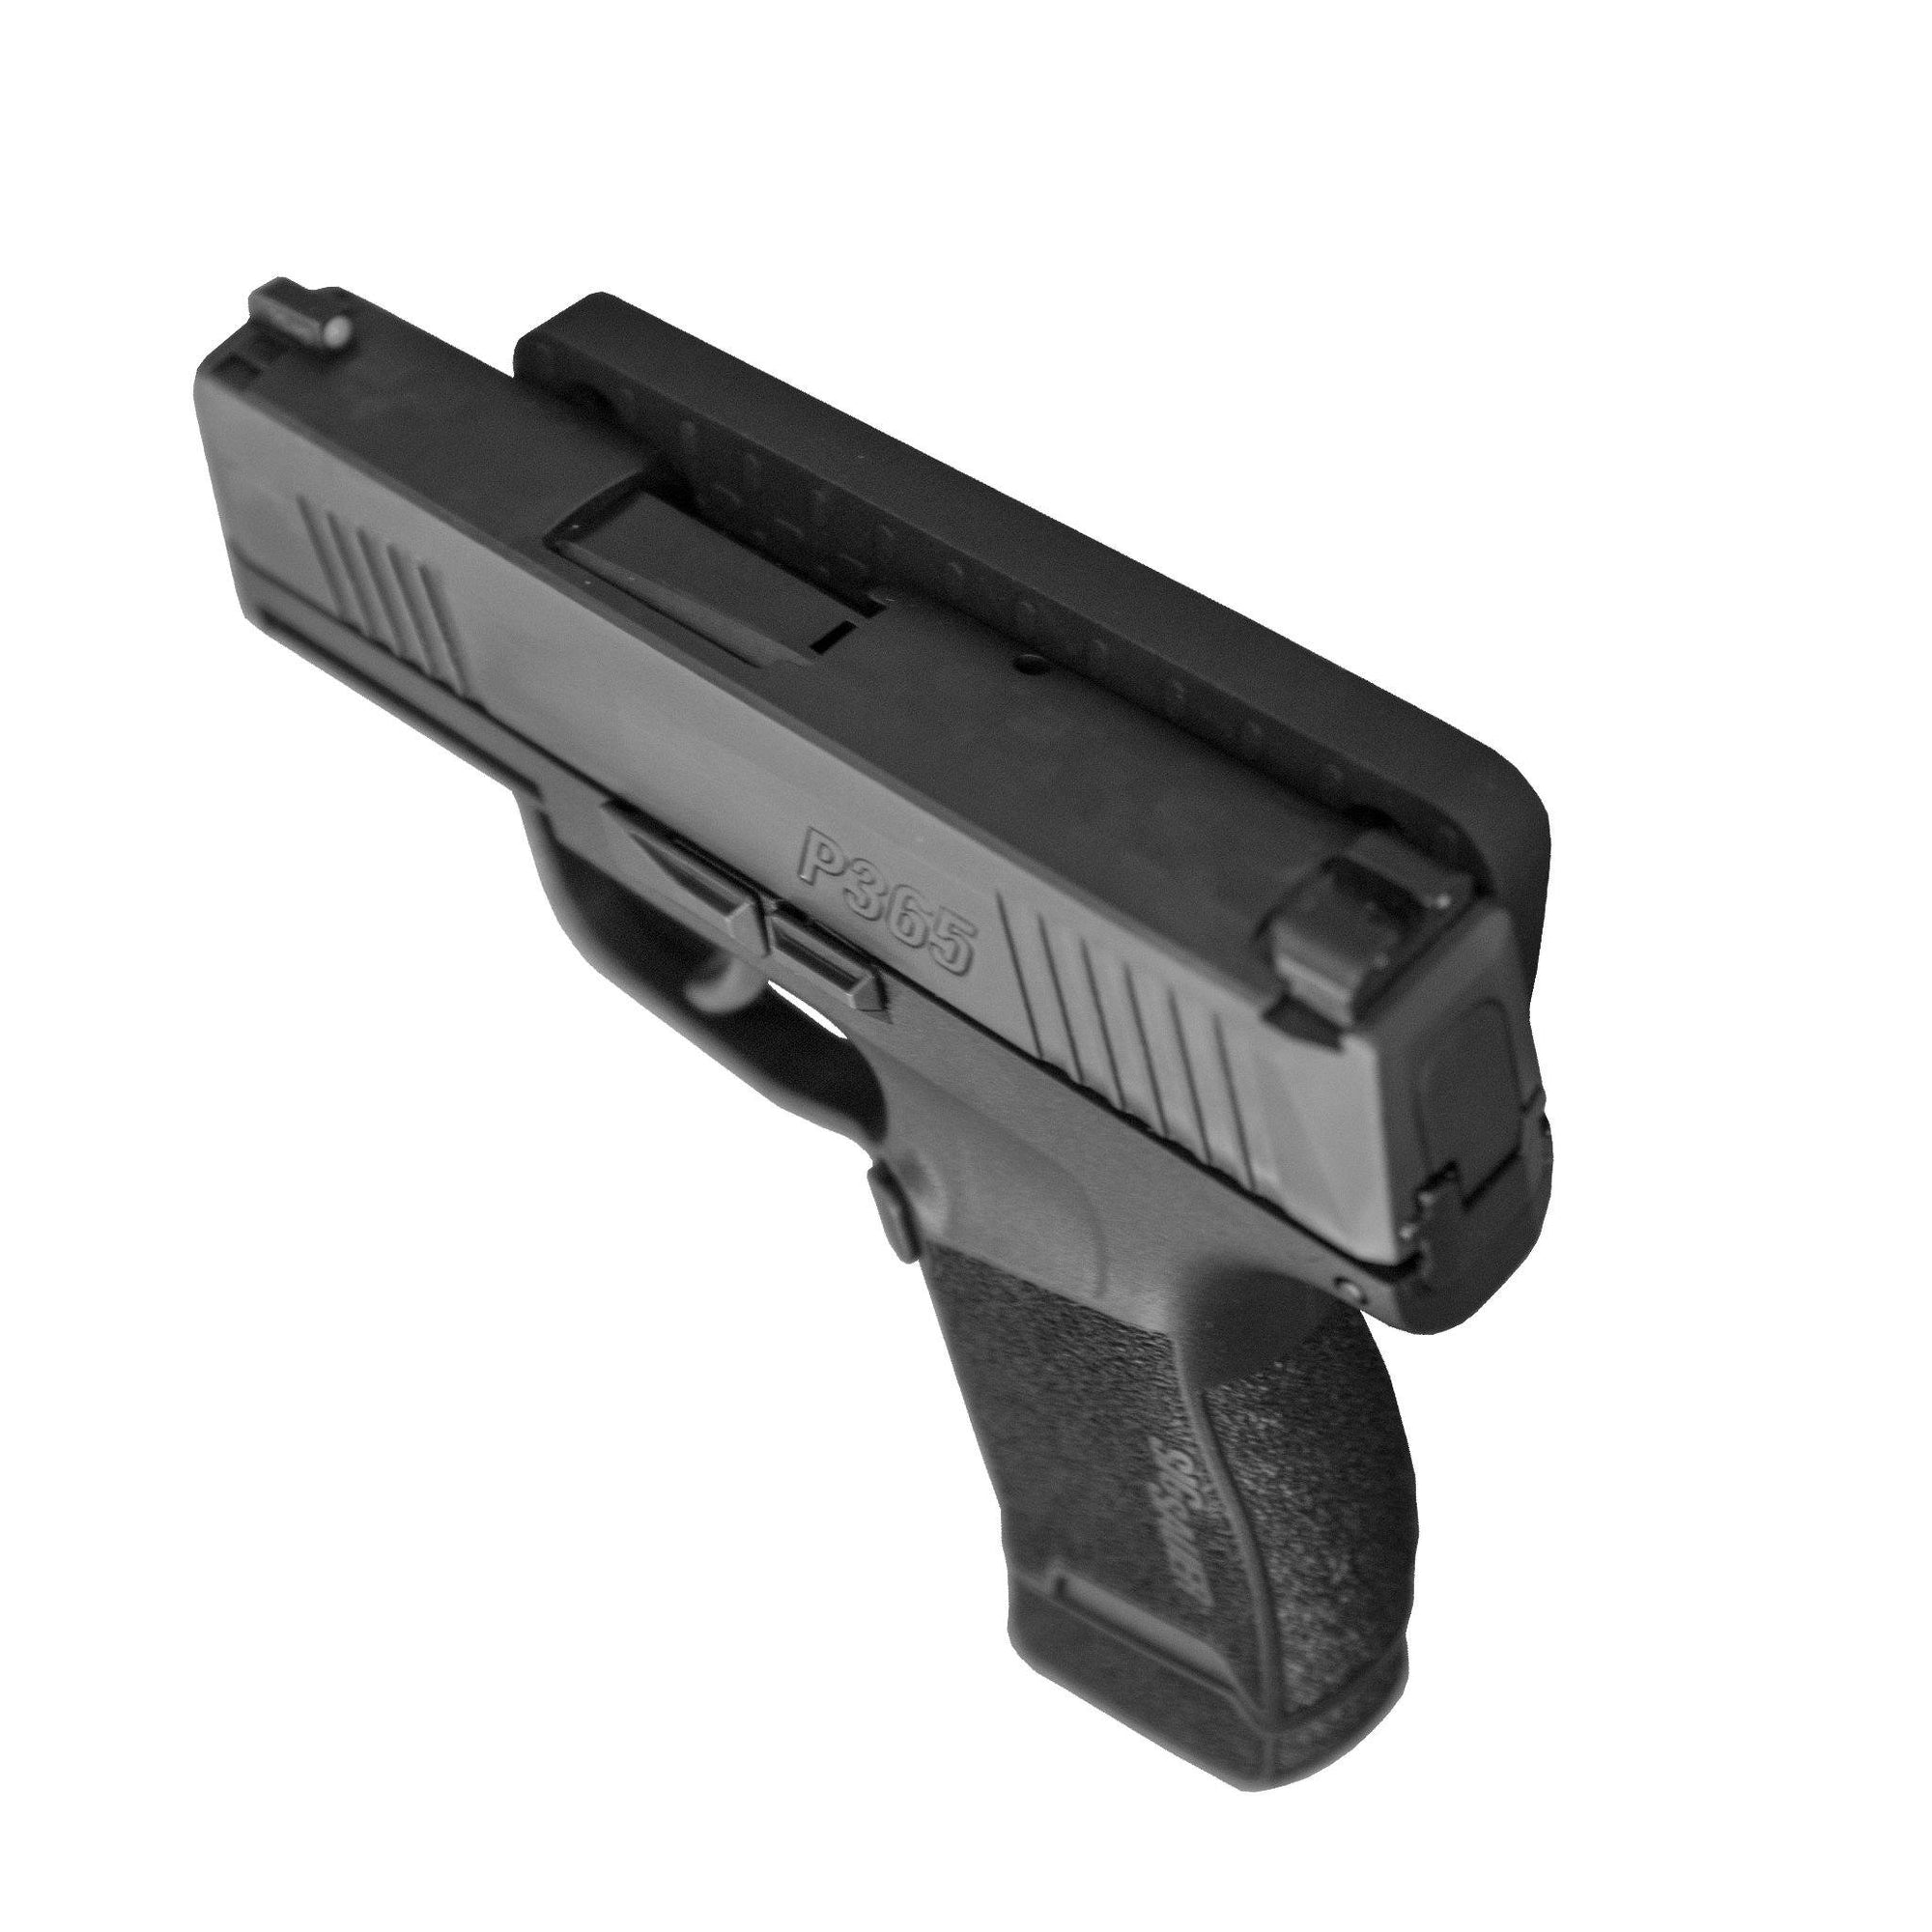 Tracker MAG-45 Gun Magnet - Holds 45 Pounds - Safe and ...